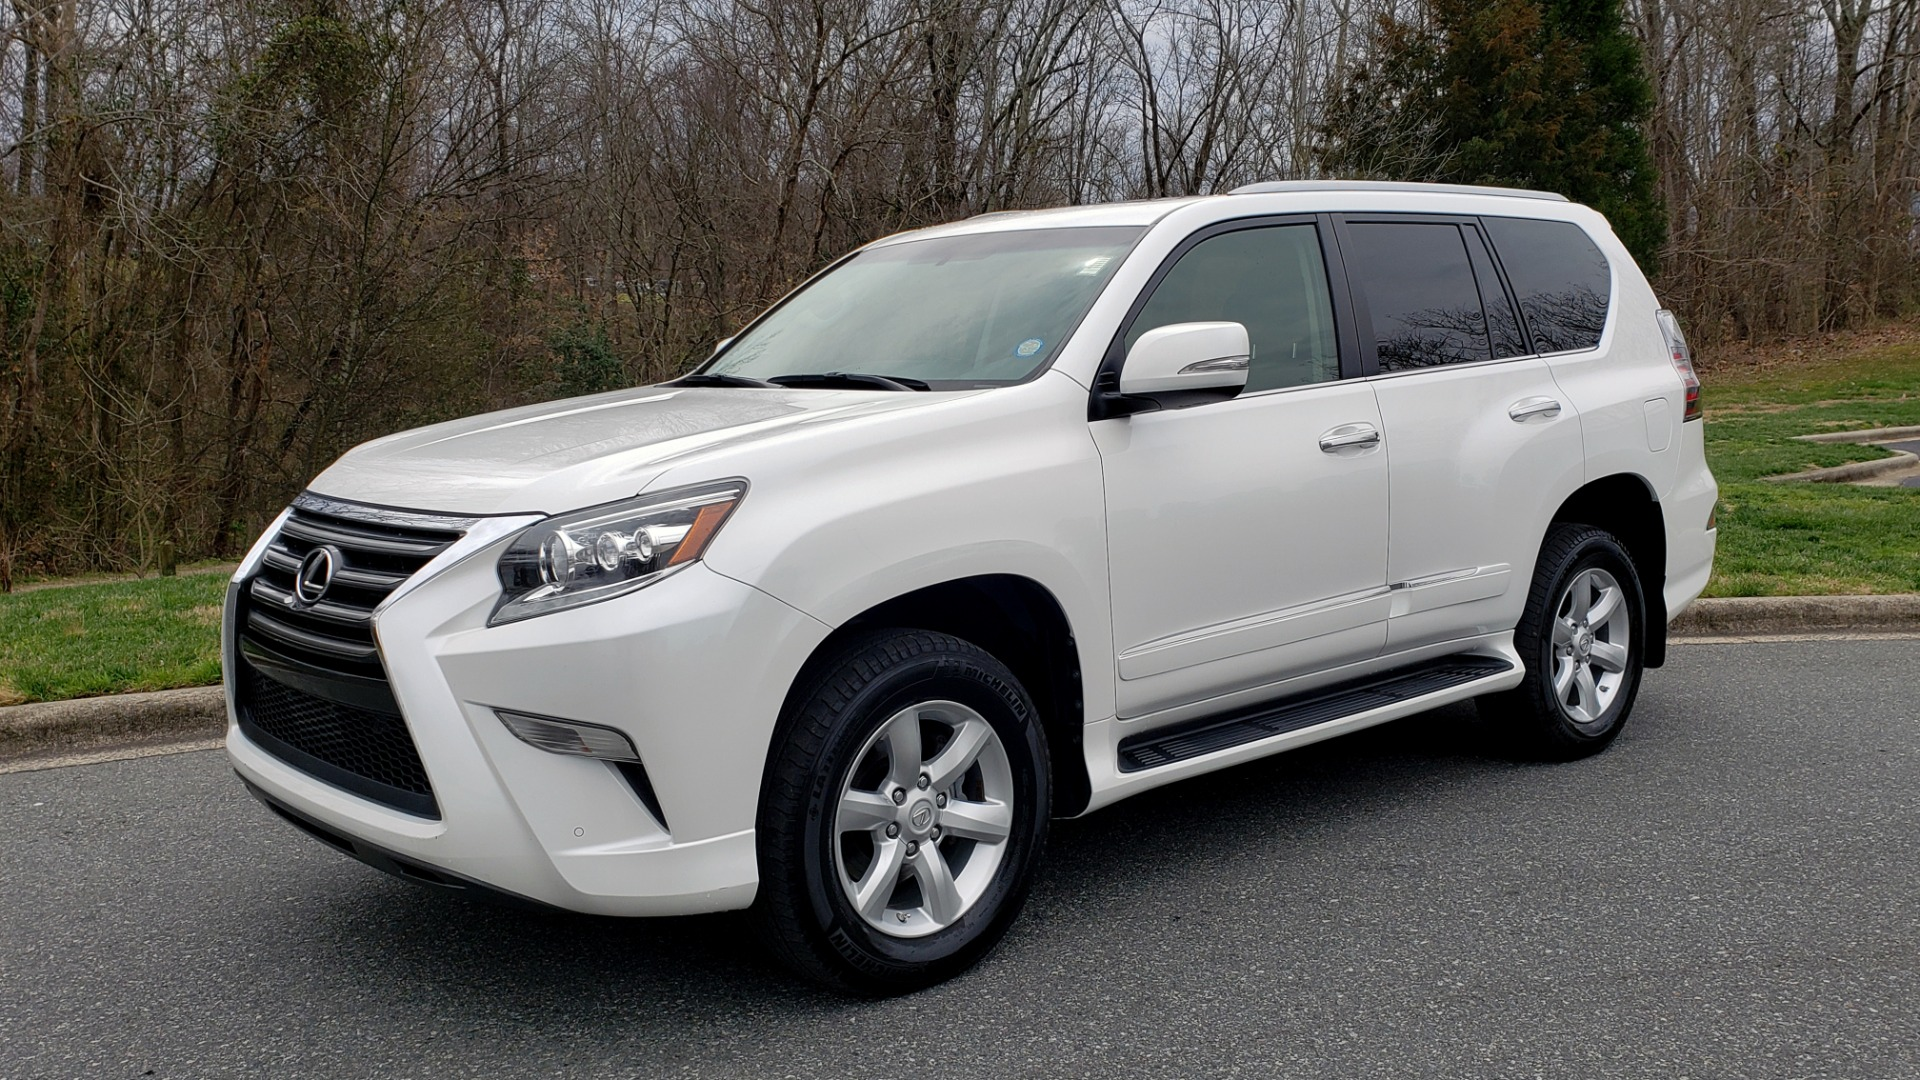 Used 2017 Lexus GX 460 4WD / NAV / VENT STS / SUNROOF / PARK ASST / BSM for sale Sold at Formula Imports in Charlotte NC 28227 1